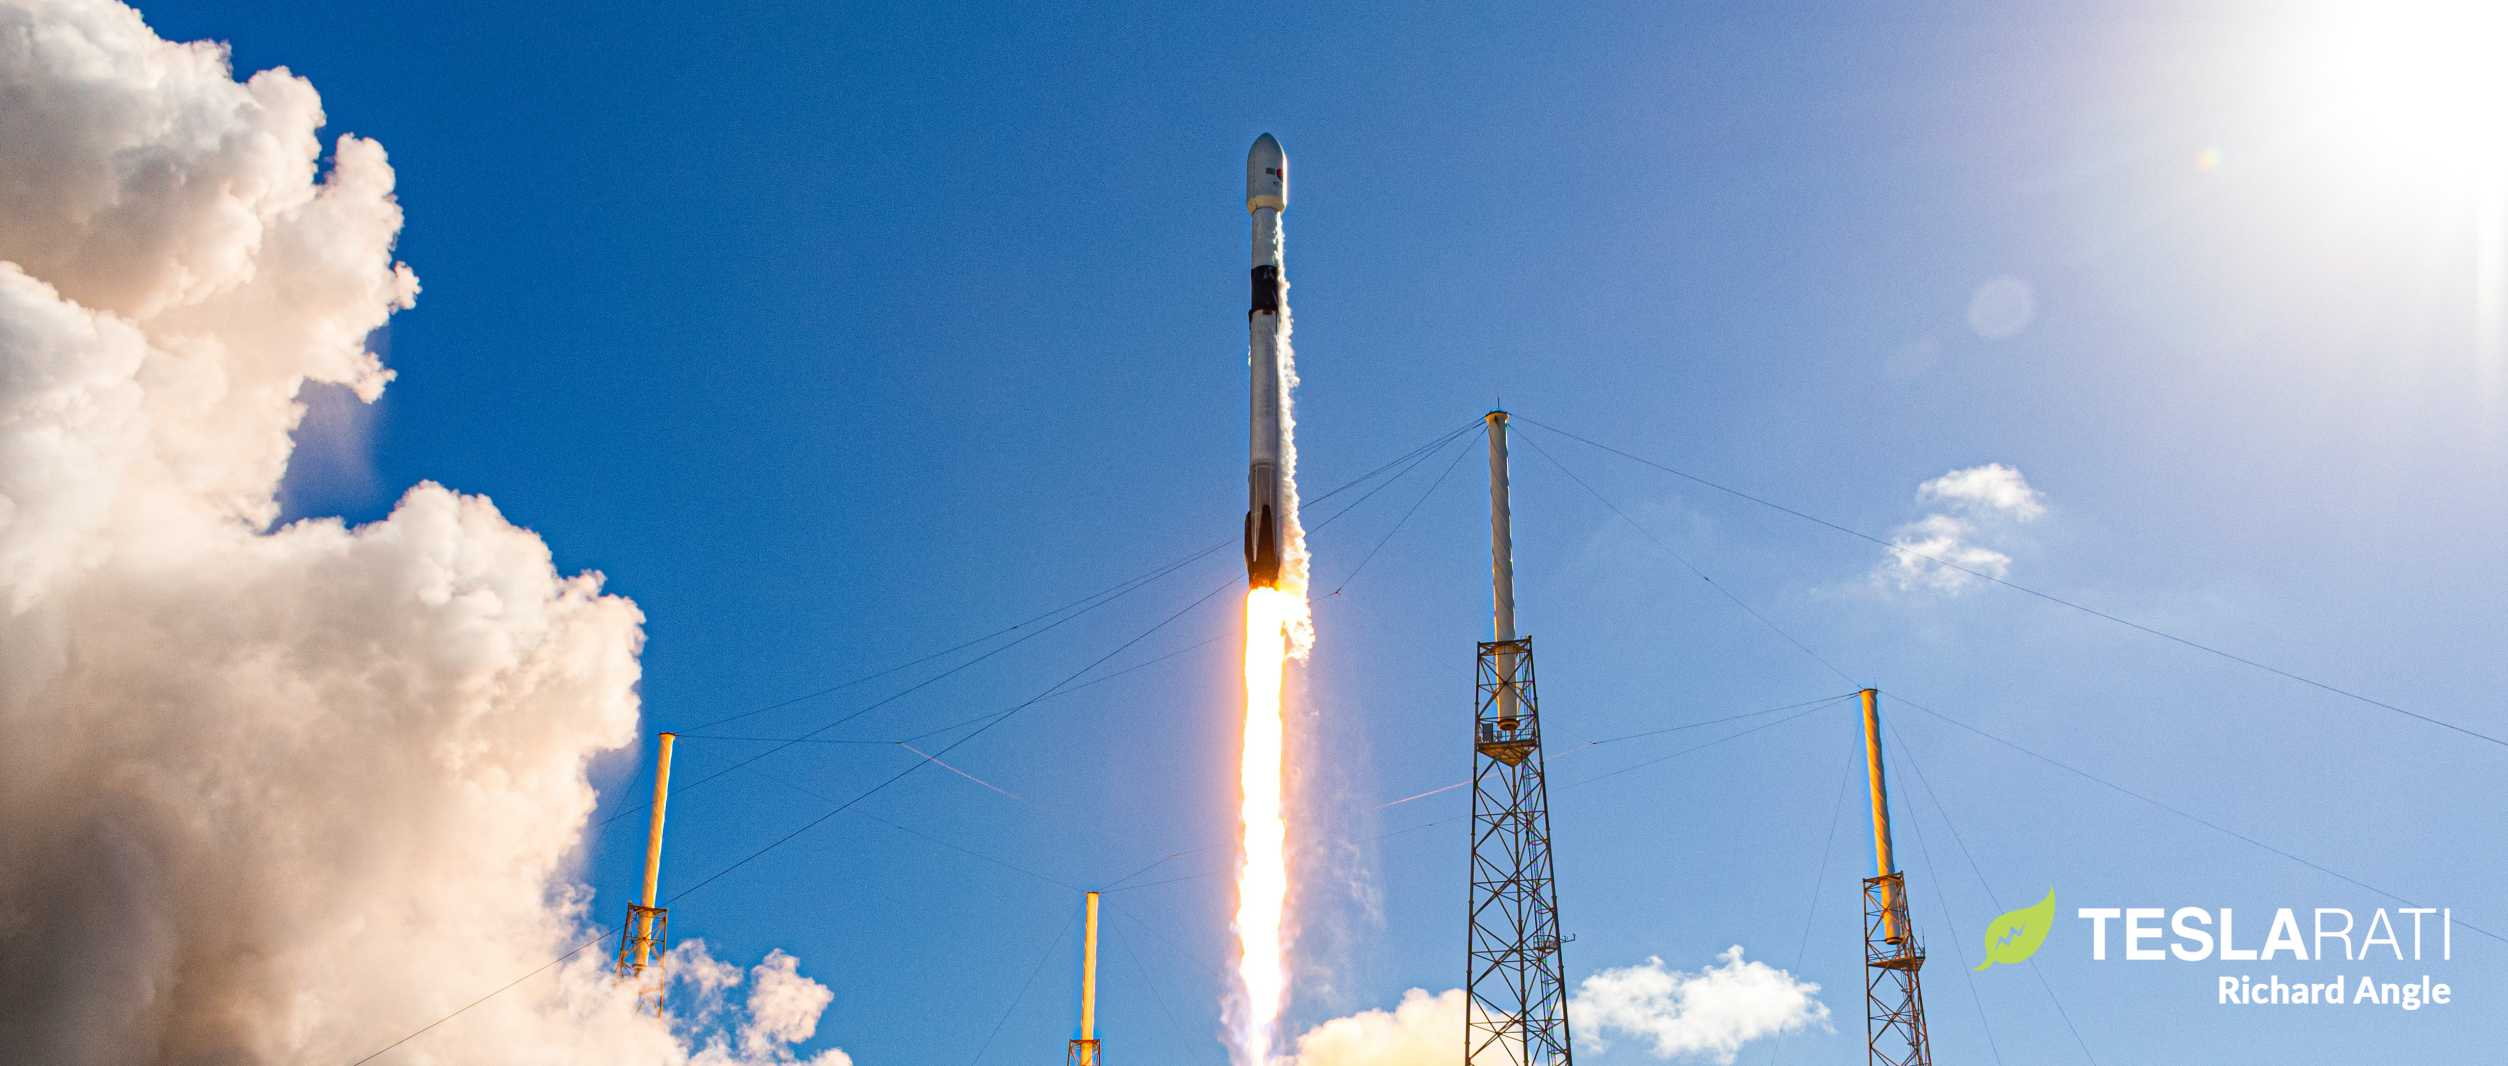 ANASIS II Falcon 9 B1058 072020 (Richard Angle) launch 4 crop 2 (c)